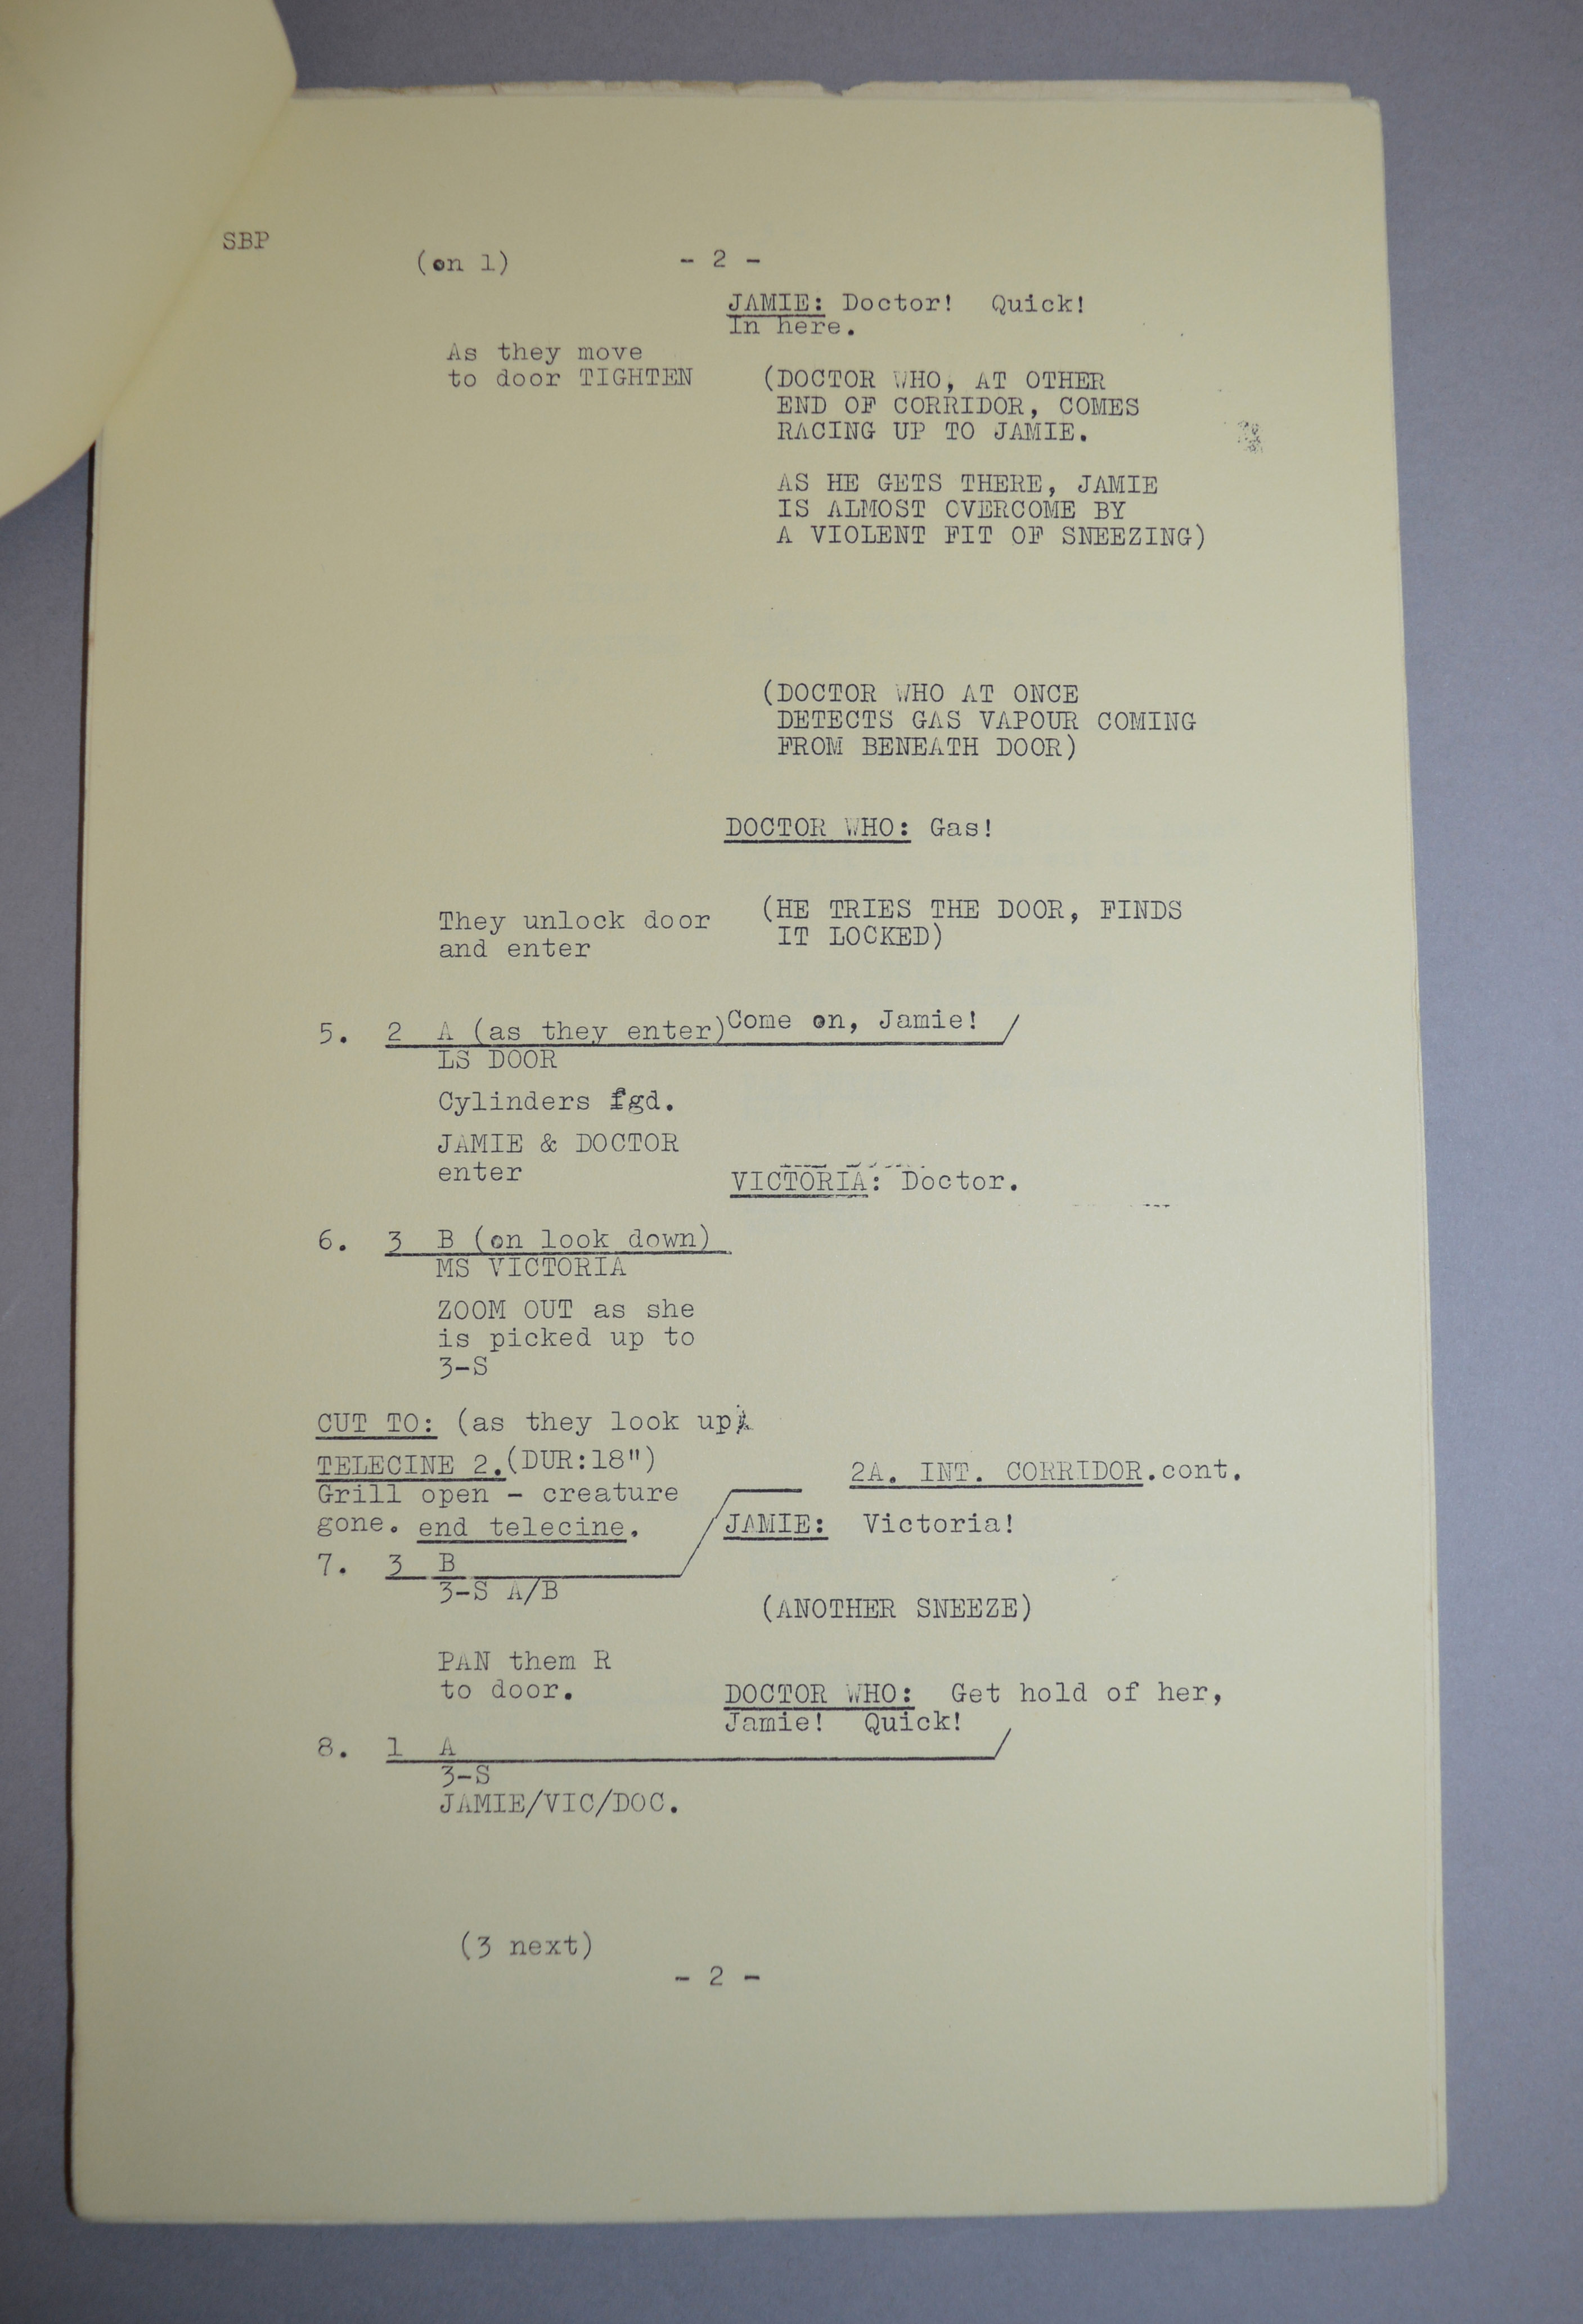 Doctor Who (Dr Who) full set of 6 original camera scripts from the missing 1968 Dr Who episode - - Image 15 of 17